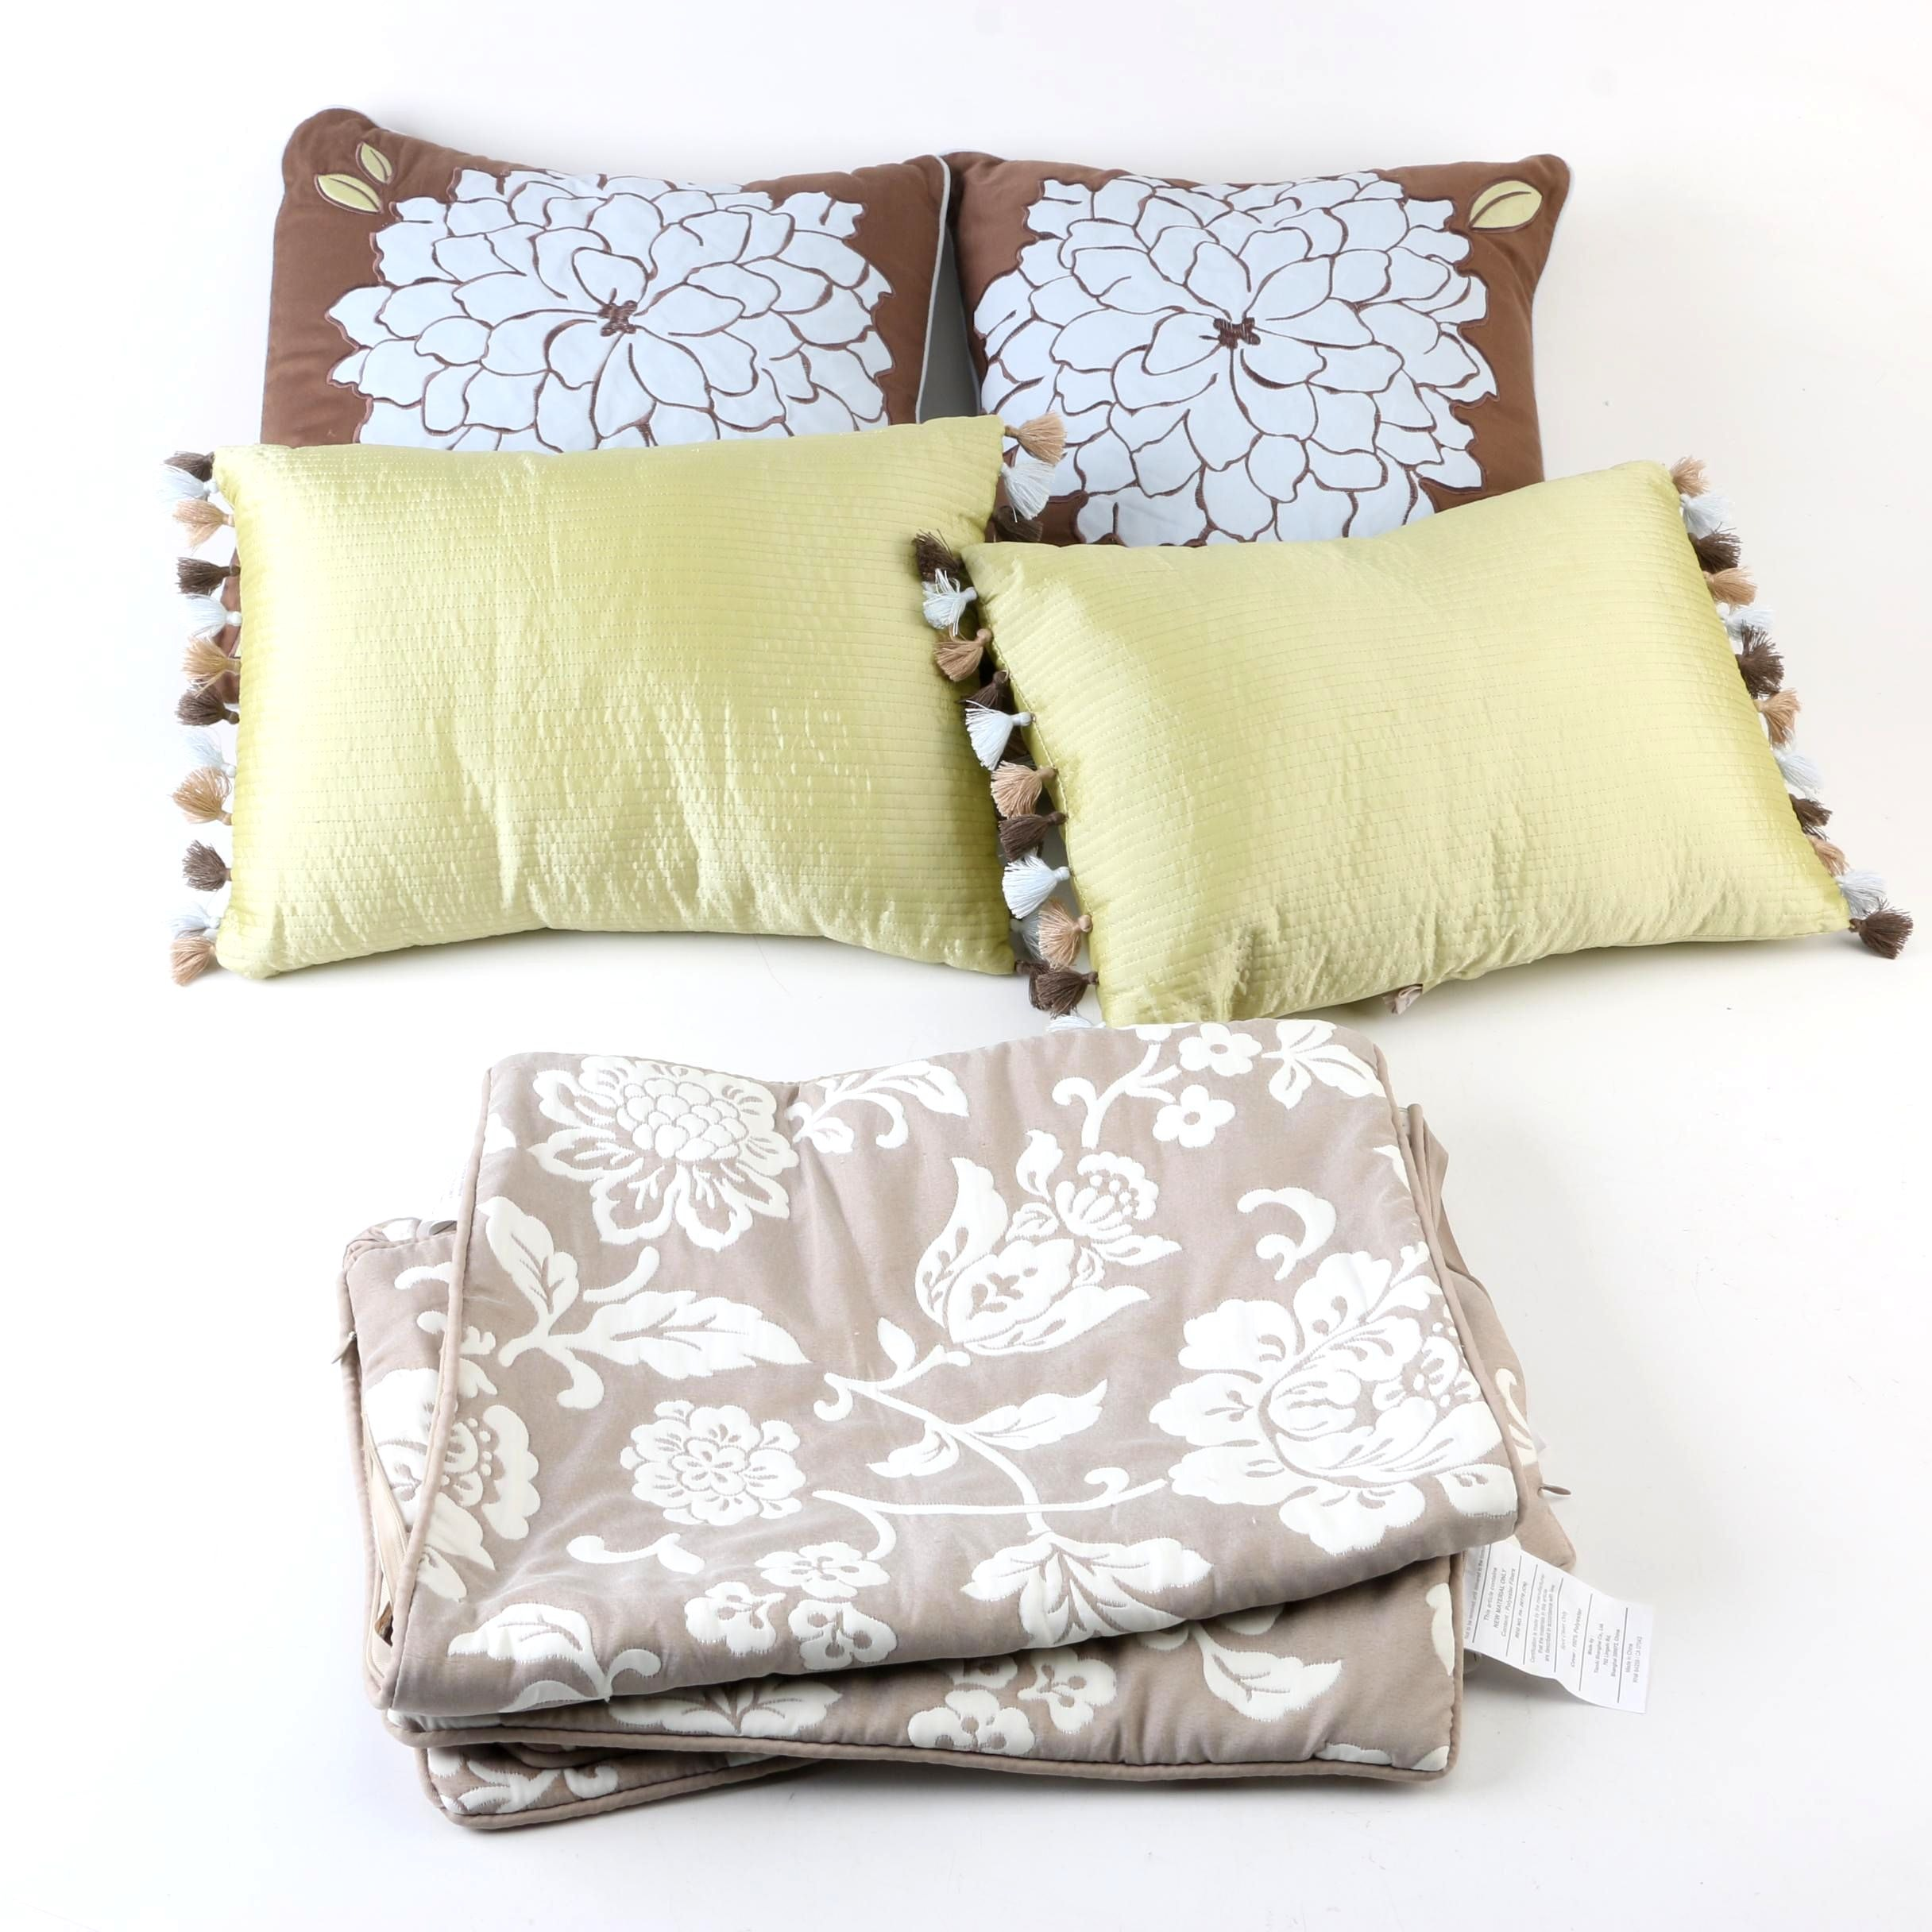 Collection of Decorative Throw Pillows and Shams